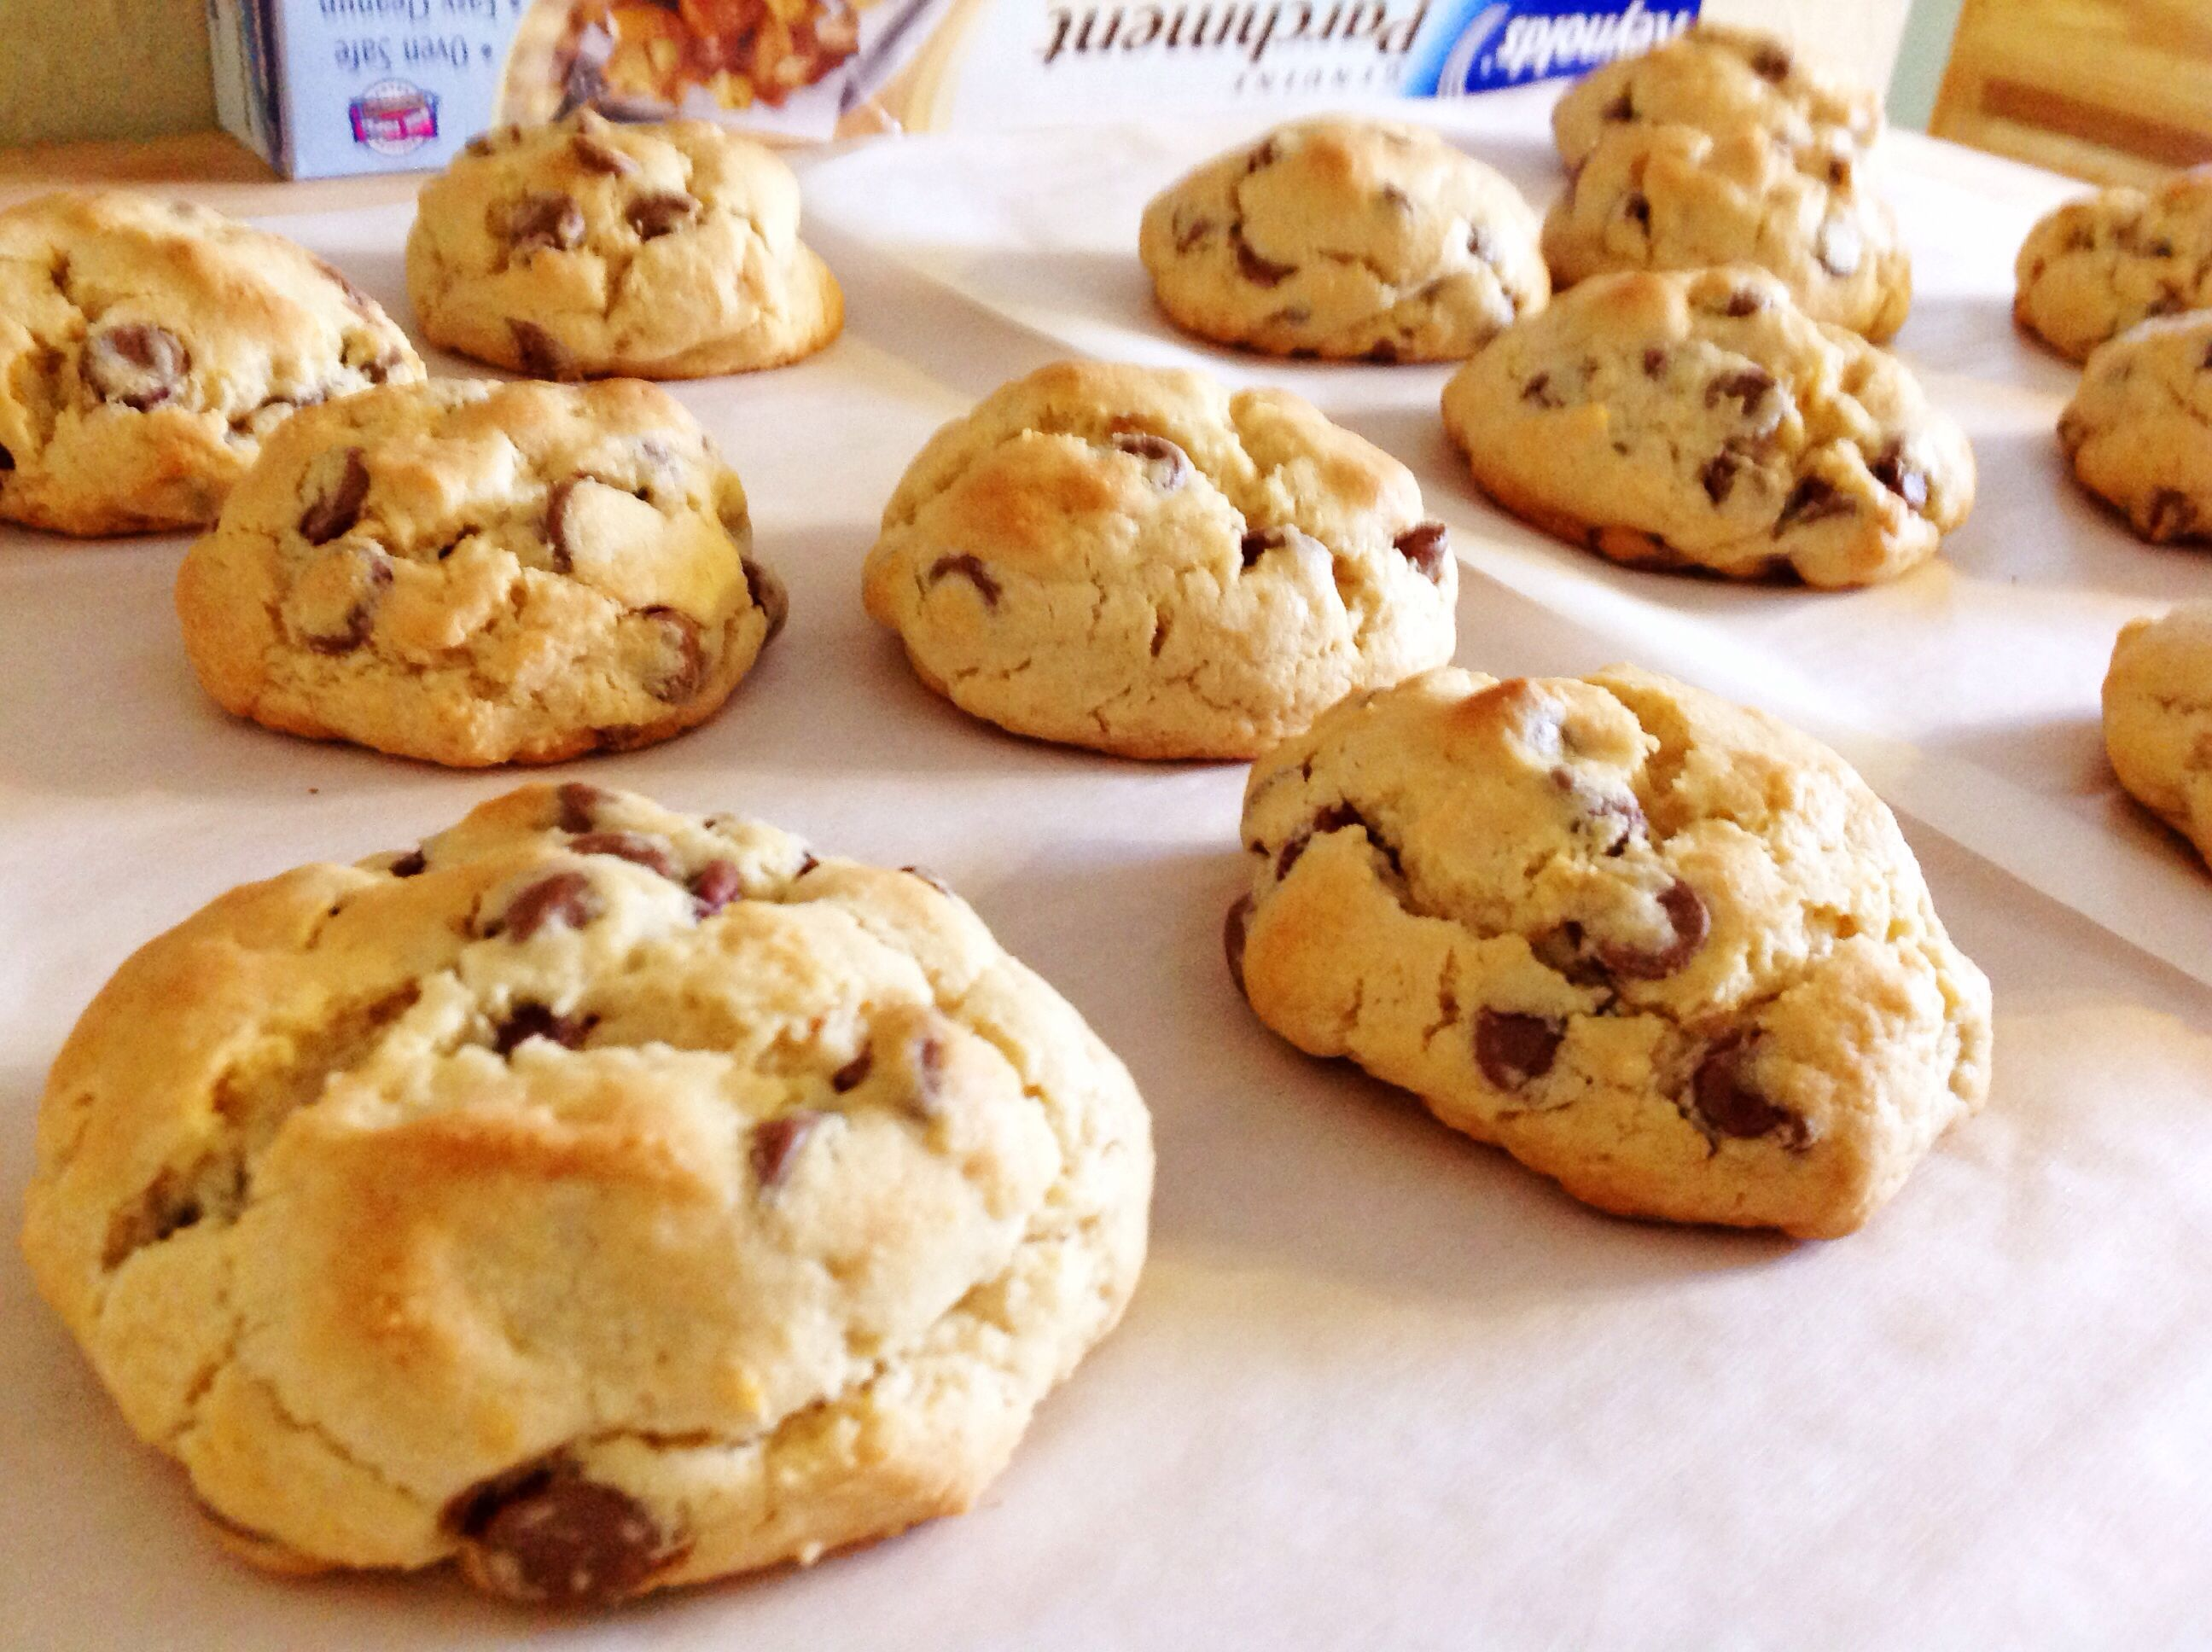 Chocolate chip cookies < 3